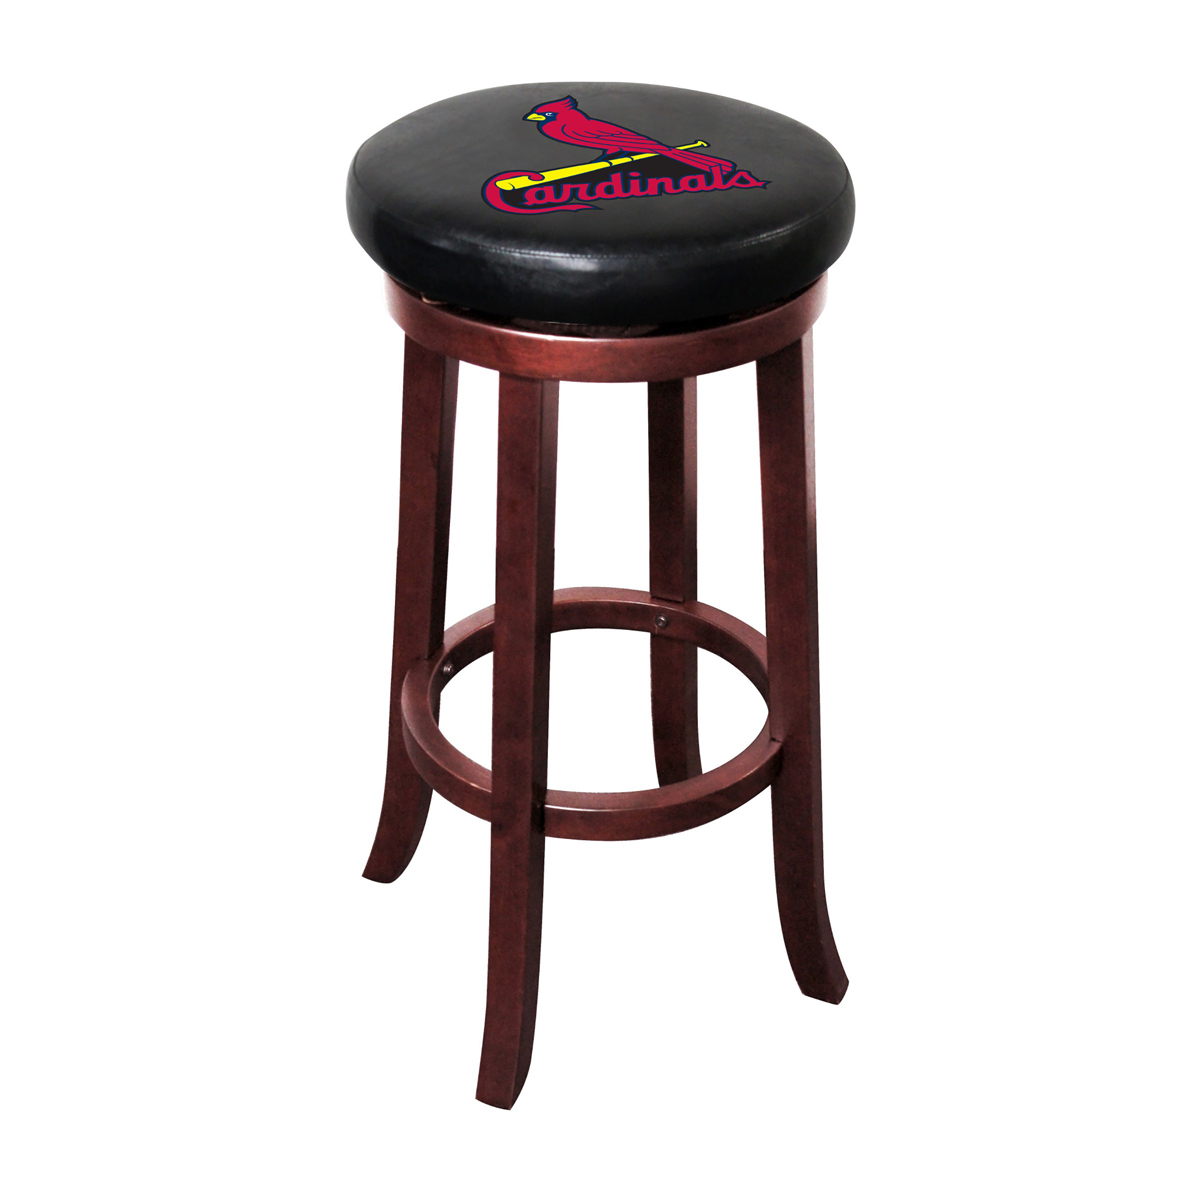 ST. LOUIS CARDINALS WOOD BAR STOOL